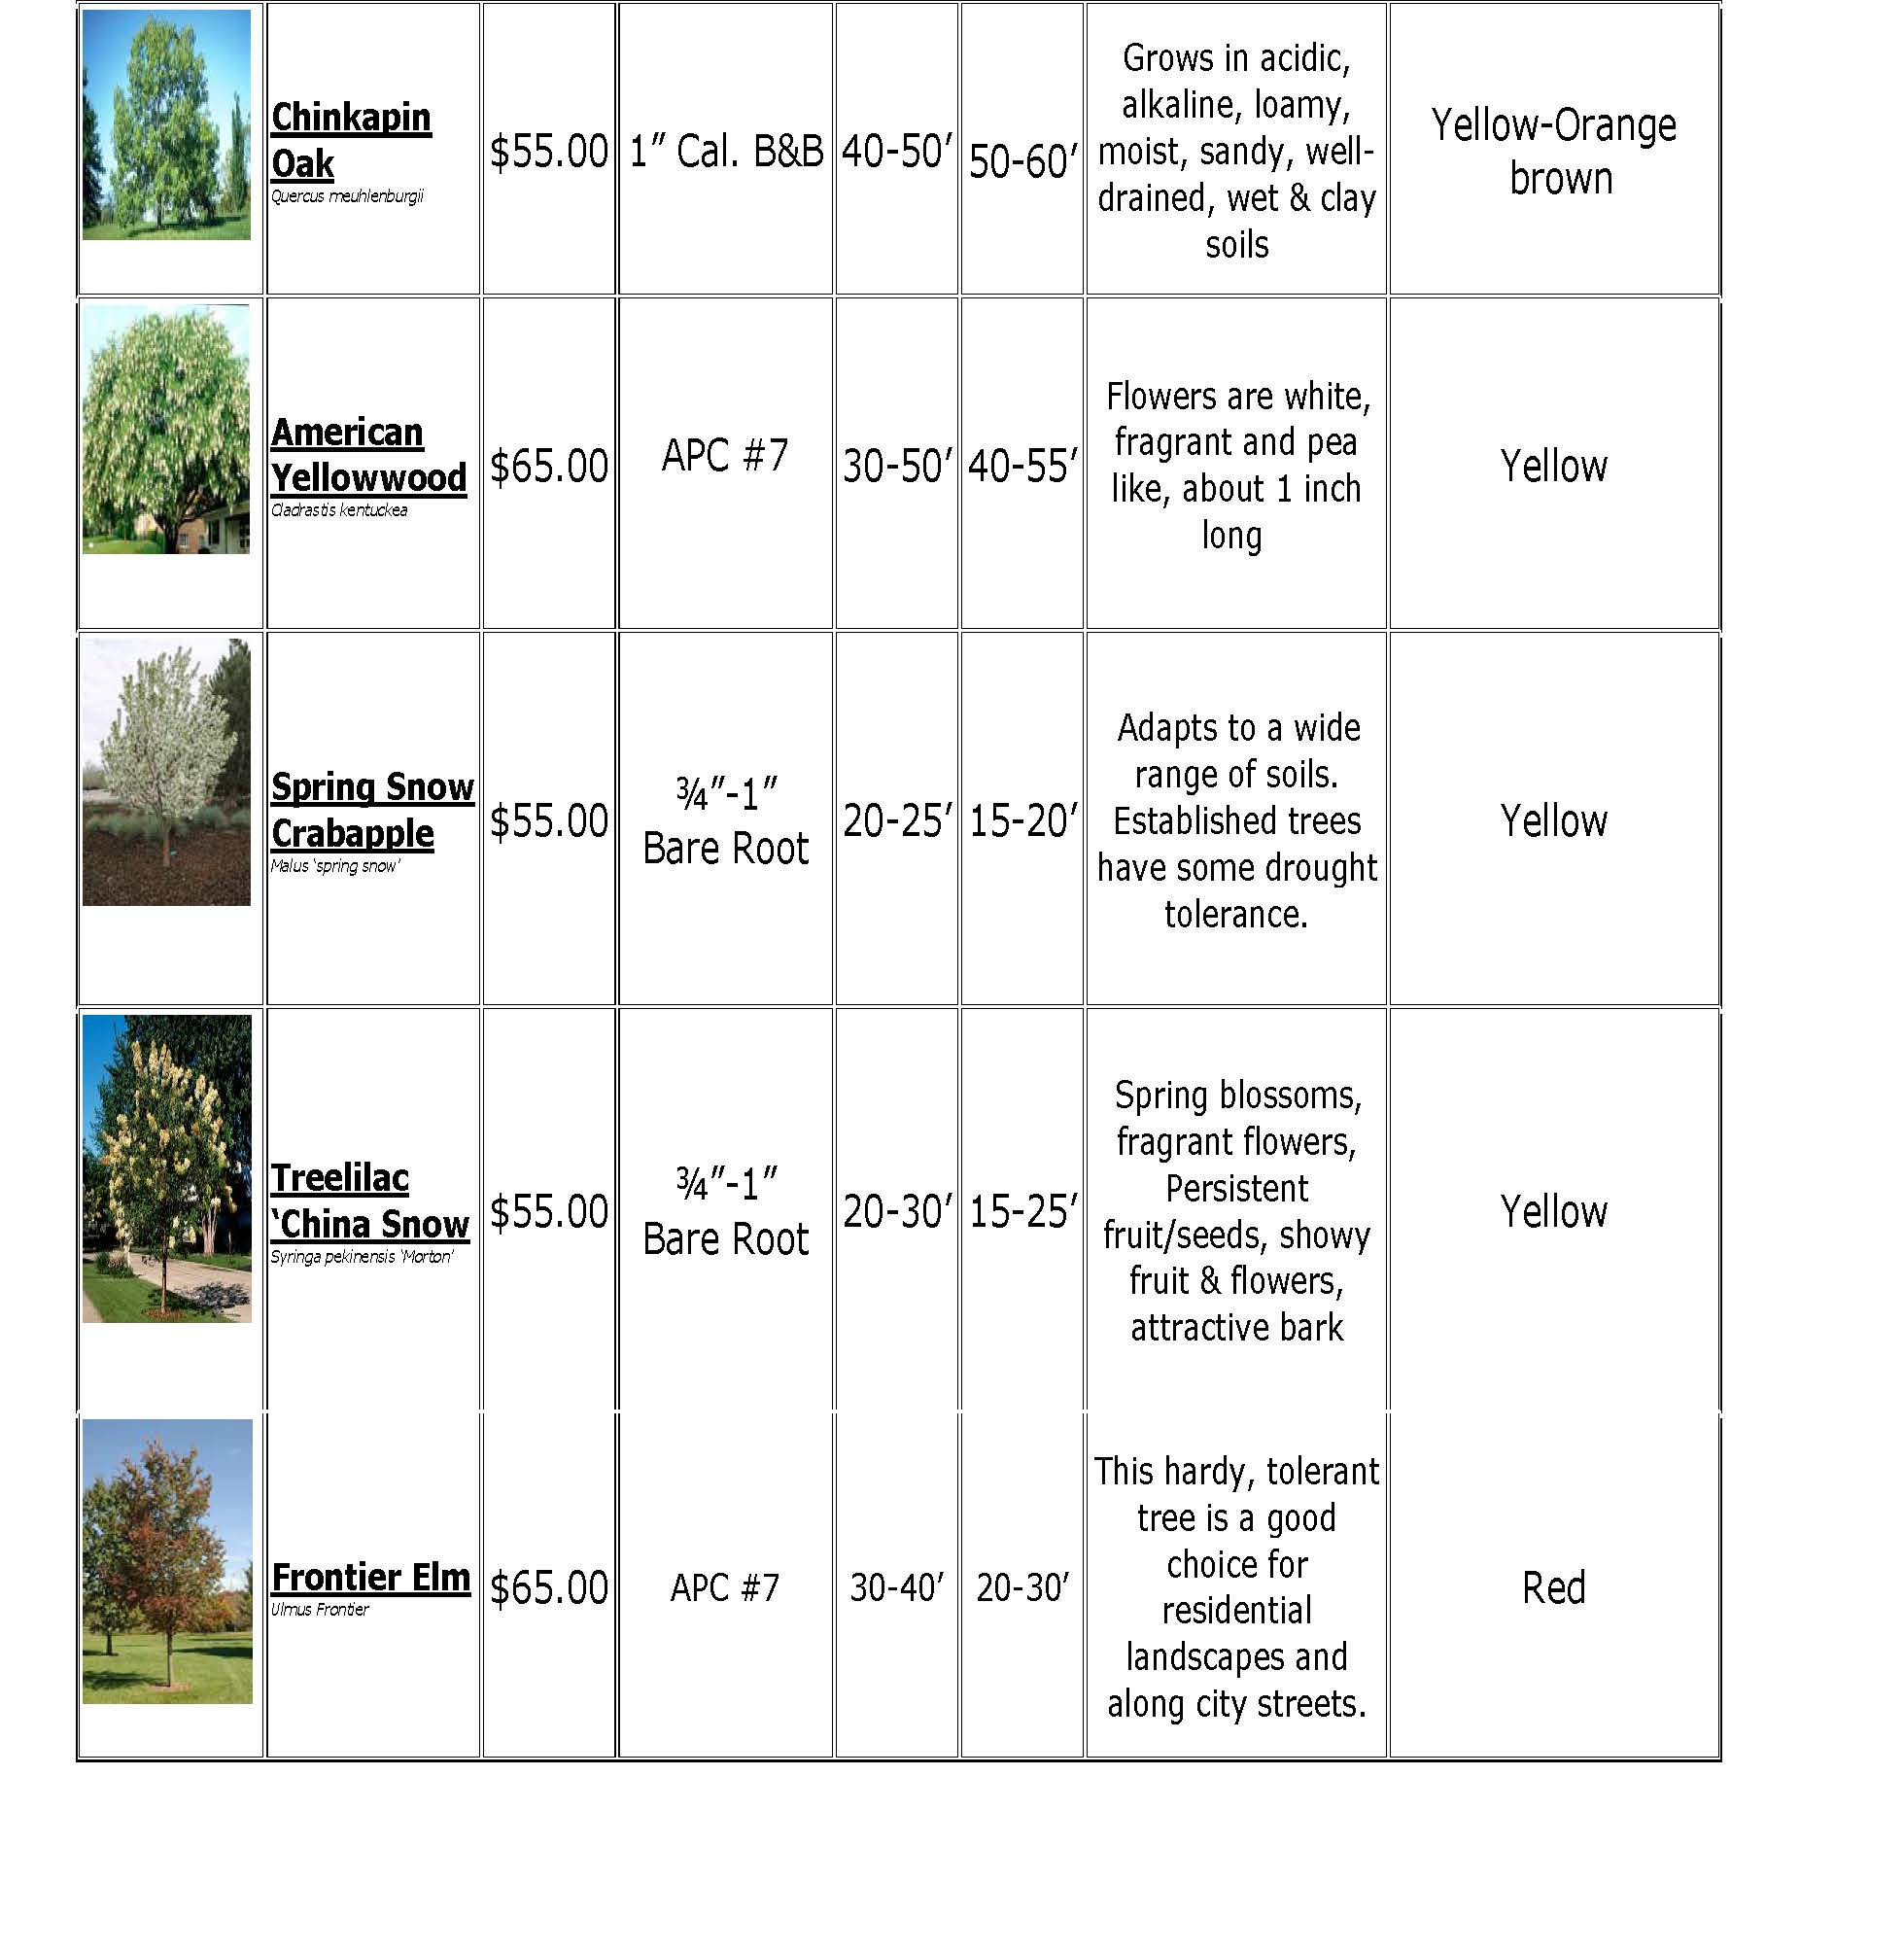 2018 Tree Descriptions Page 2 of 2